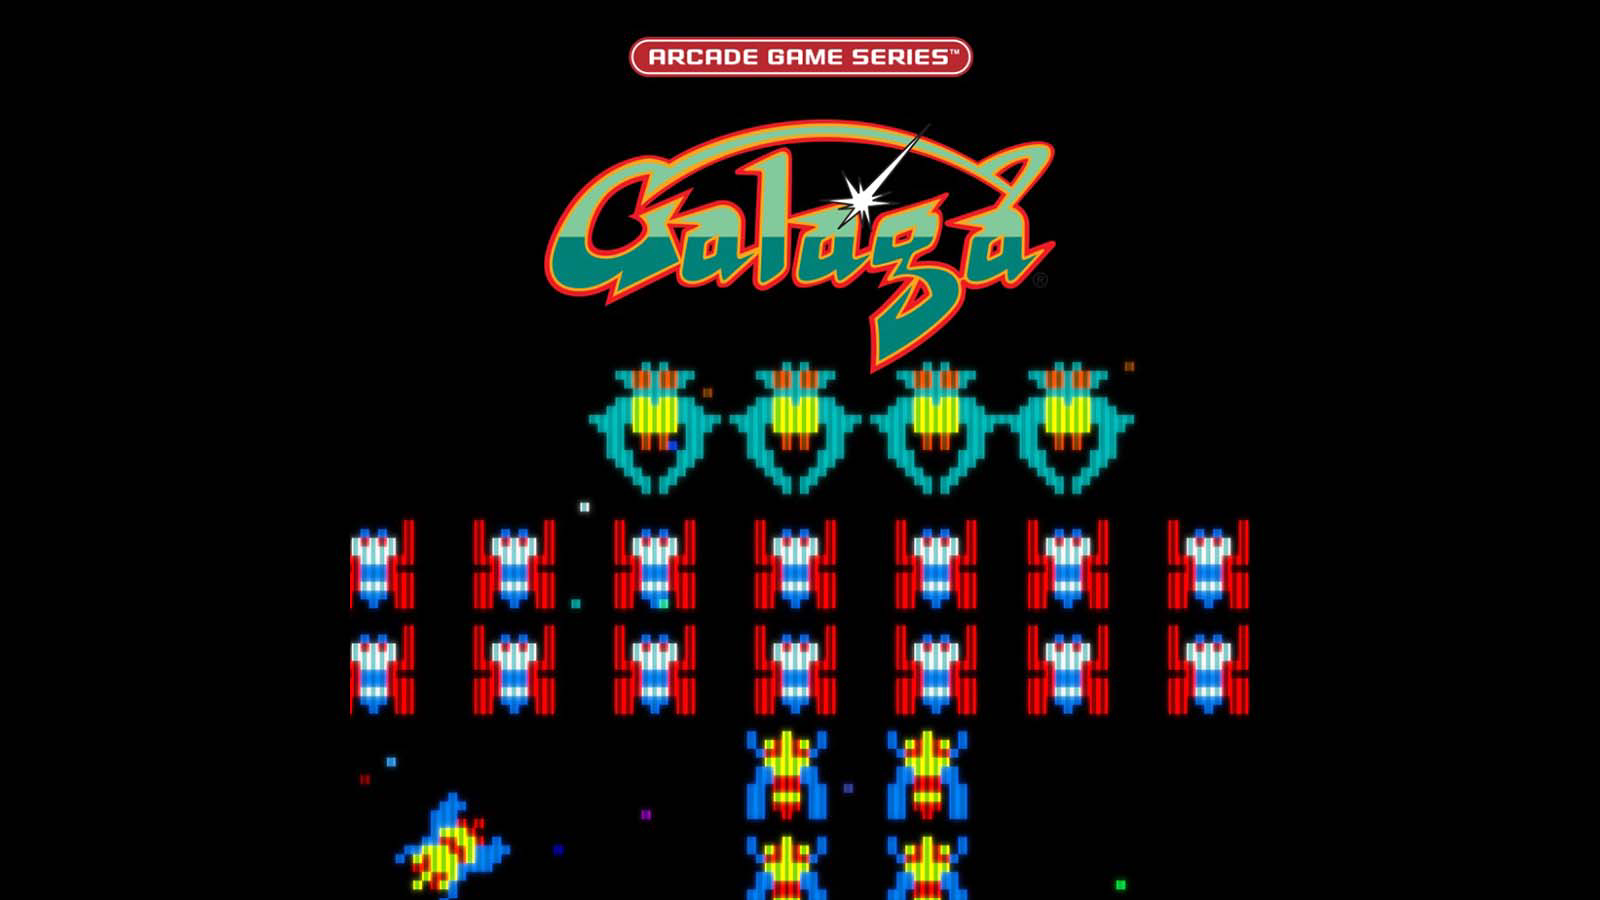 galaga arcade game - photo #27